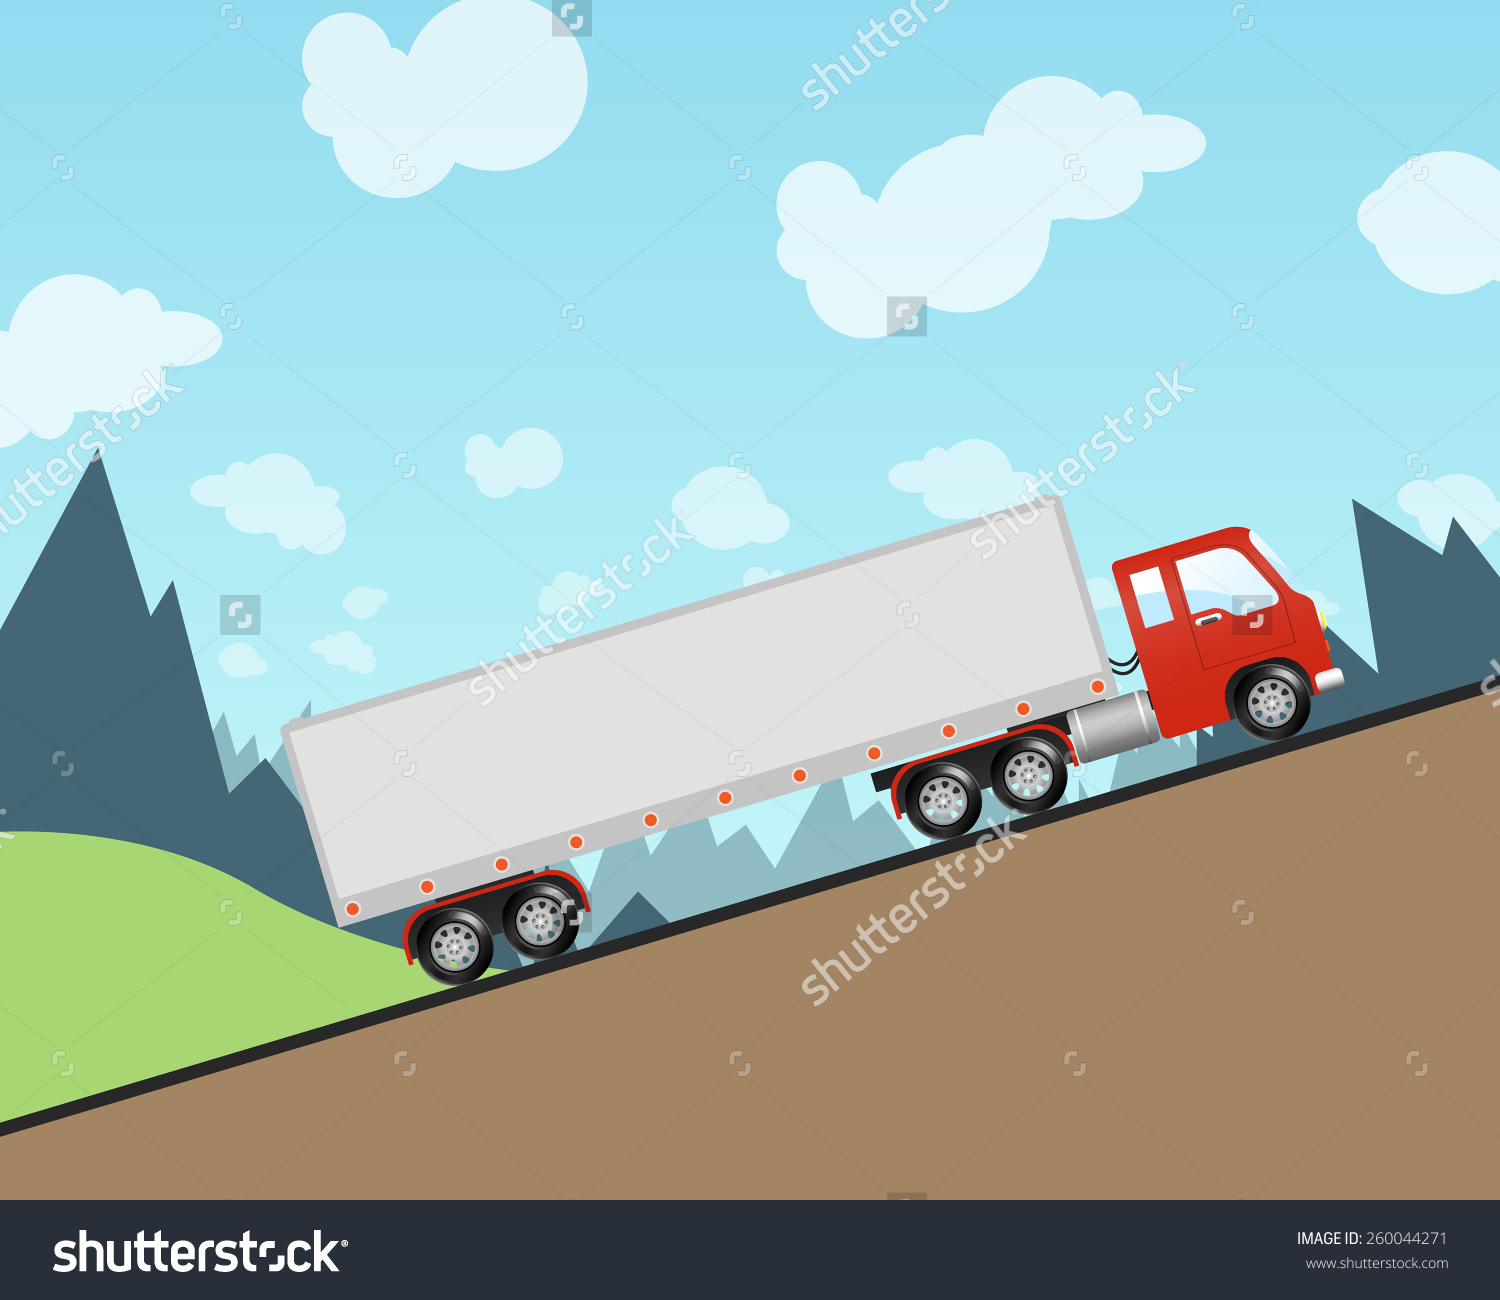 Semi Truck Driving Steep Hill Stock Vector 260044271.